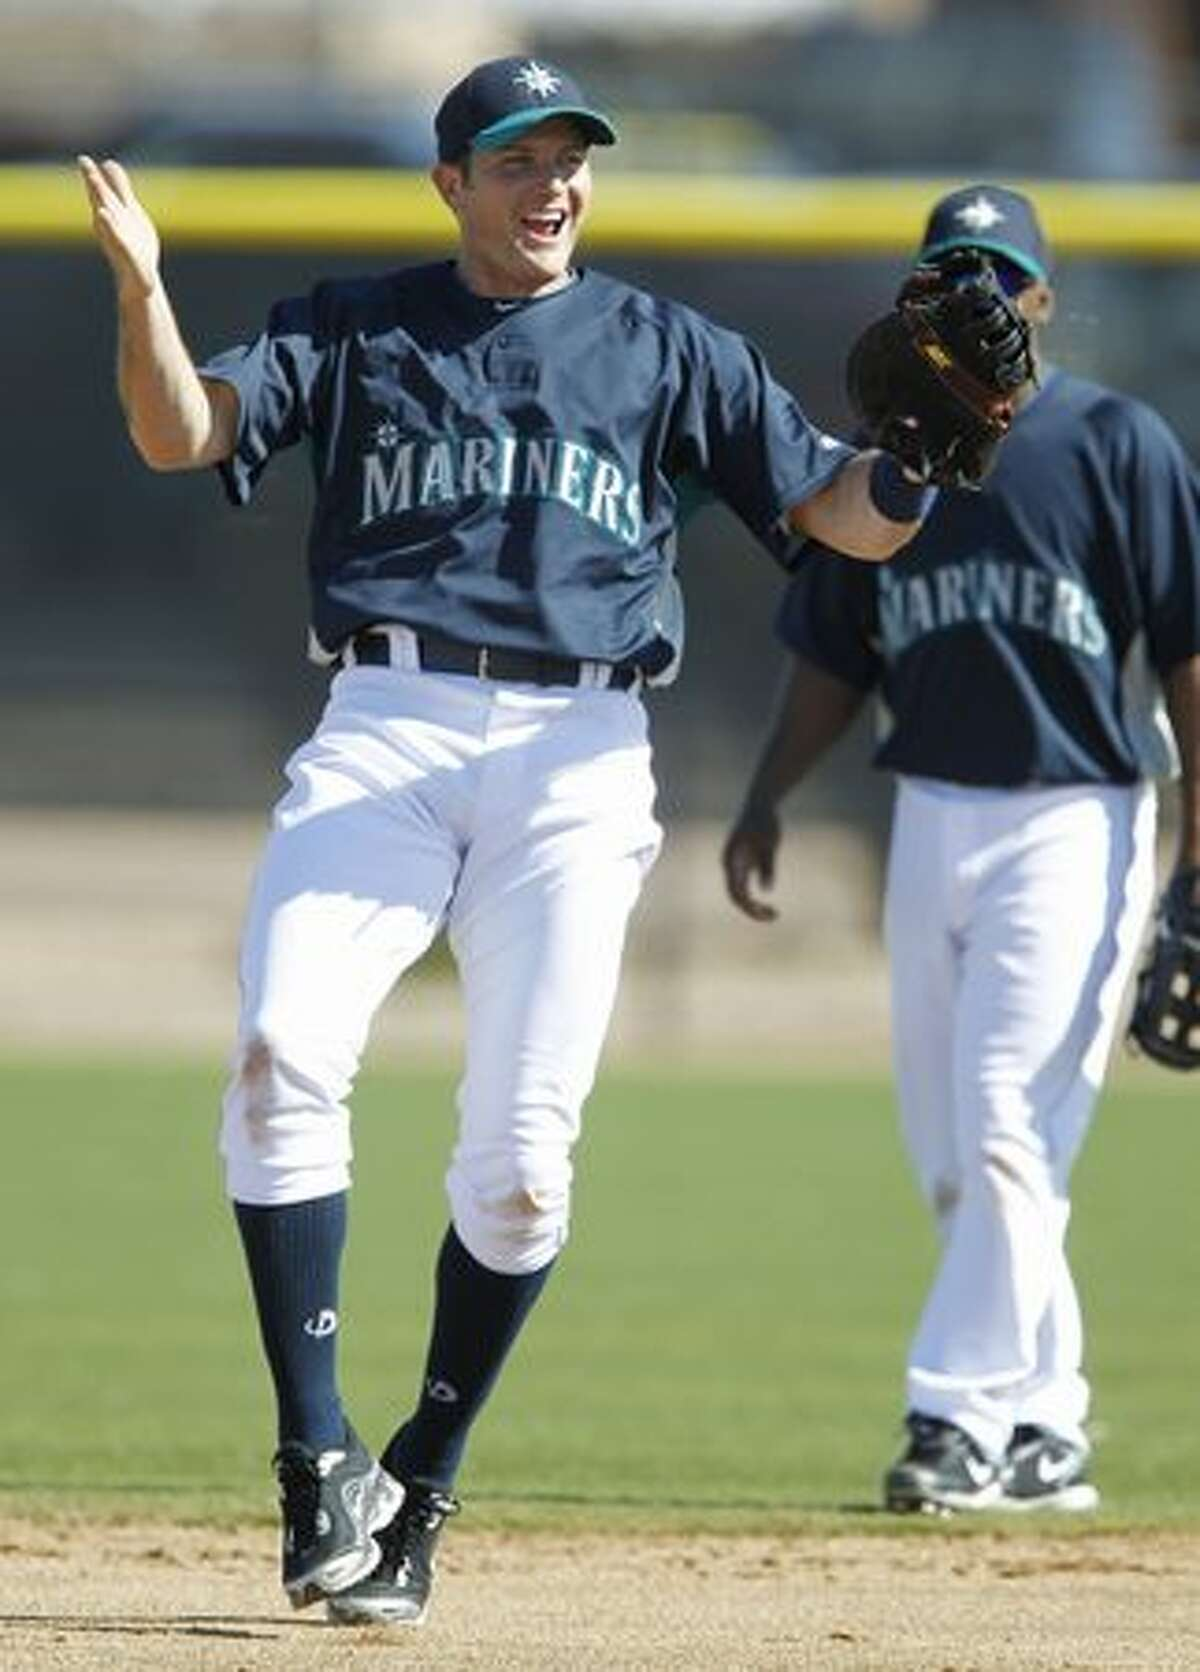 Seattle Mariners first baseman Mike Sweeney reacts after fielding the ball during a spring training baseball practice Thursday in Peoria, Ariz. (AP Photo/Charlie Neibergall)